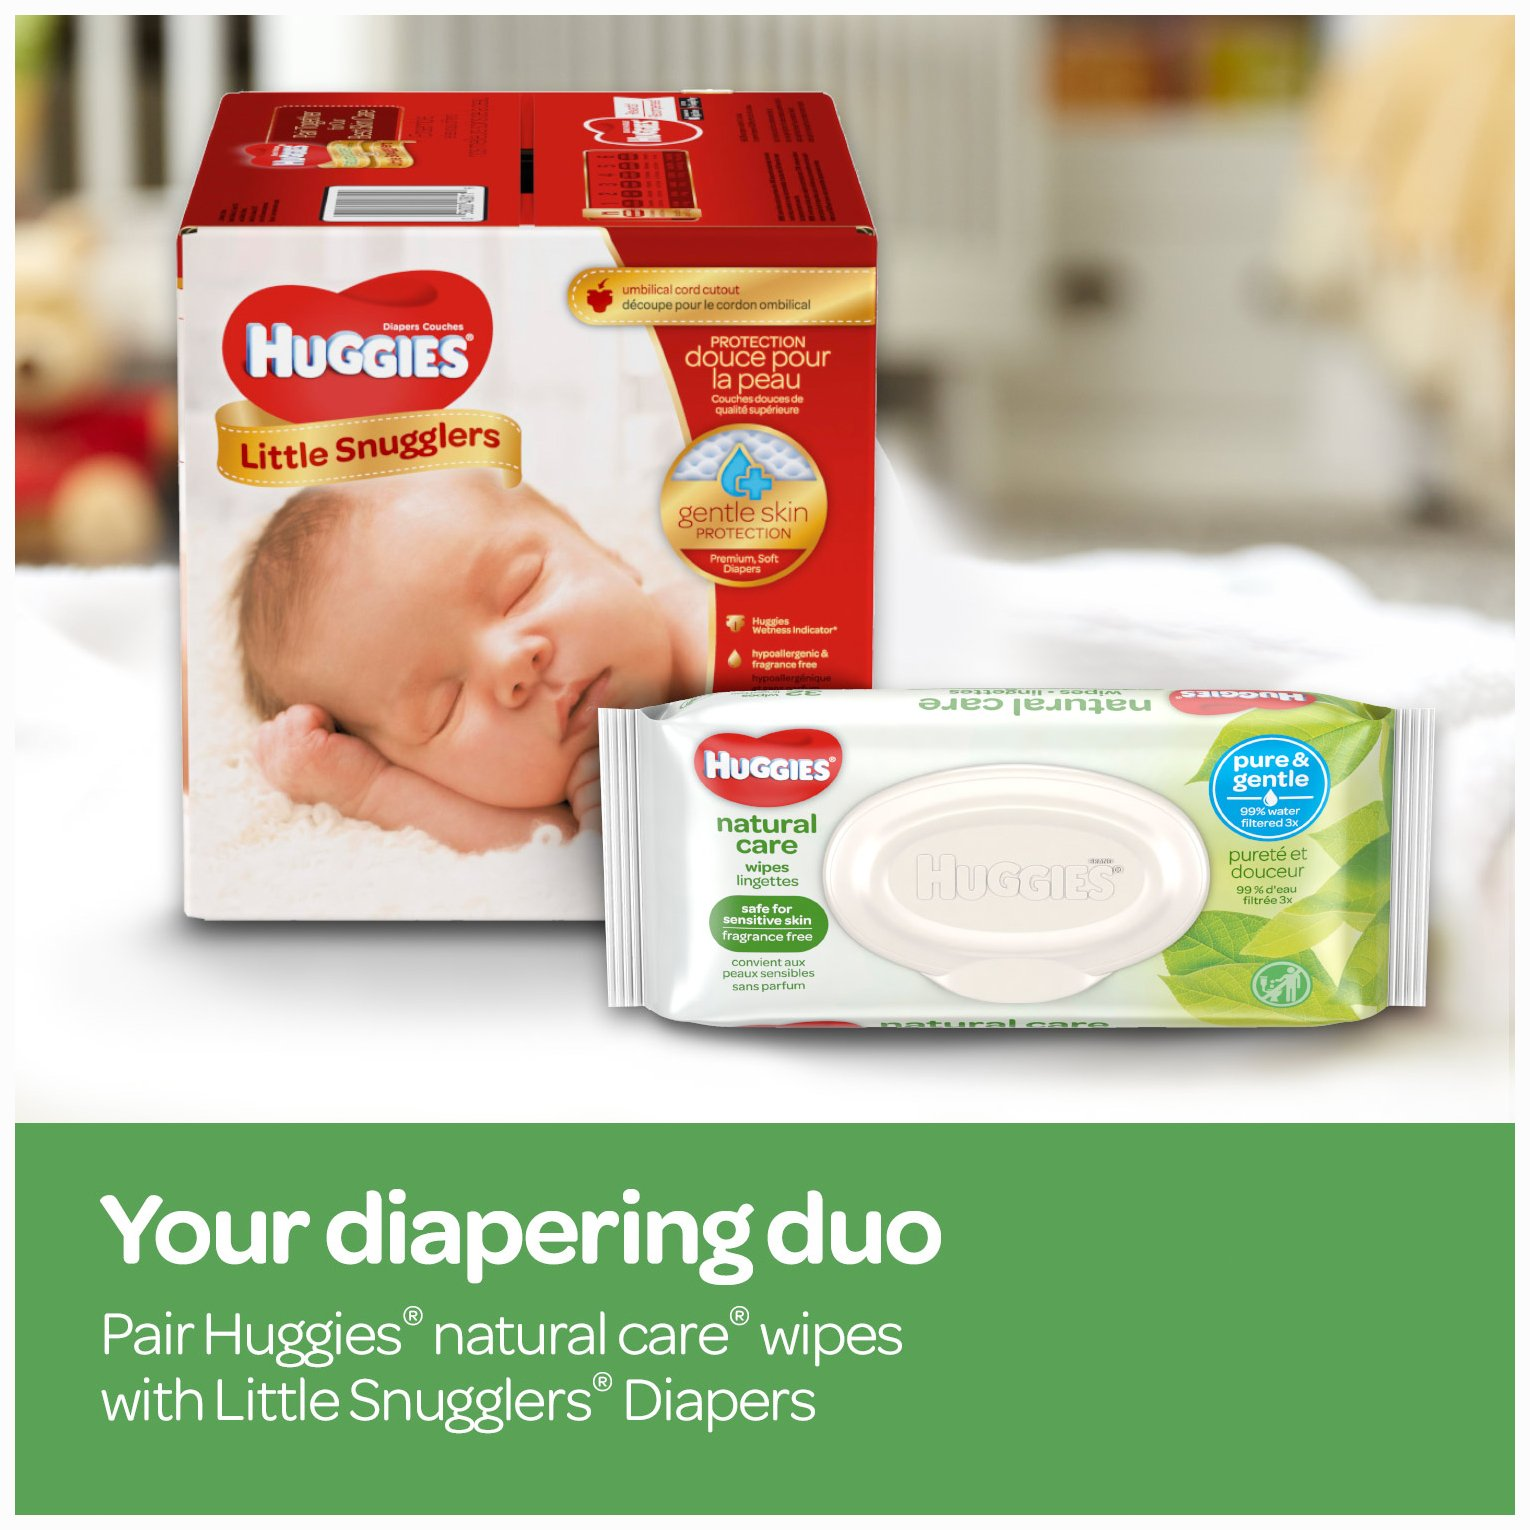 Huggies Natural Care Unscented Baby Wipes, Sensitive, Hypoallergenic, Water-Based, 3 Refill Packs, 648 Count Total by HUGGIES (Image #10)